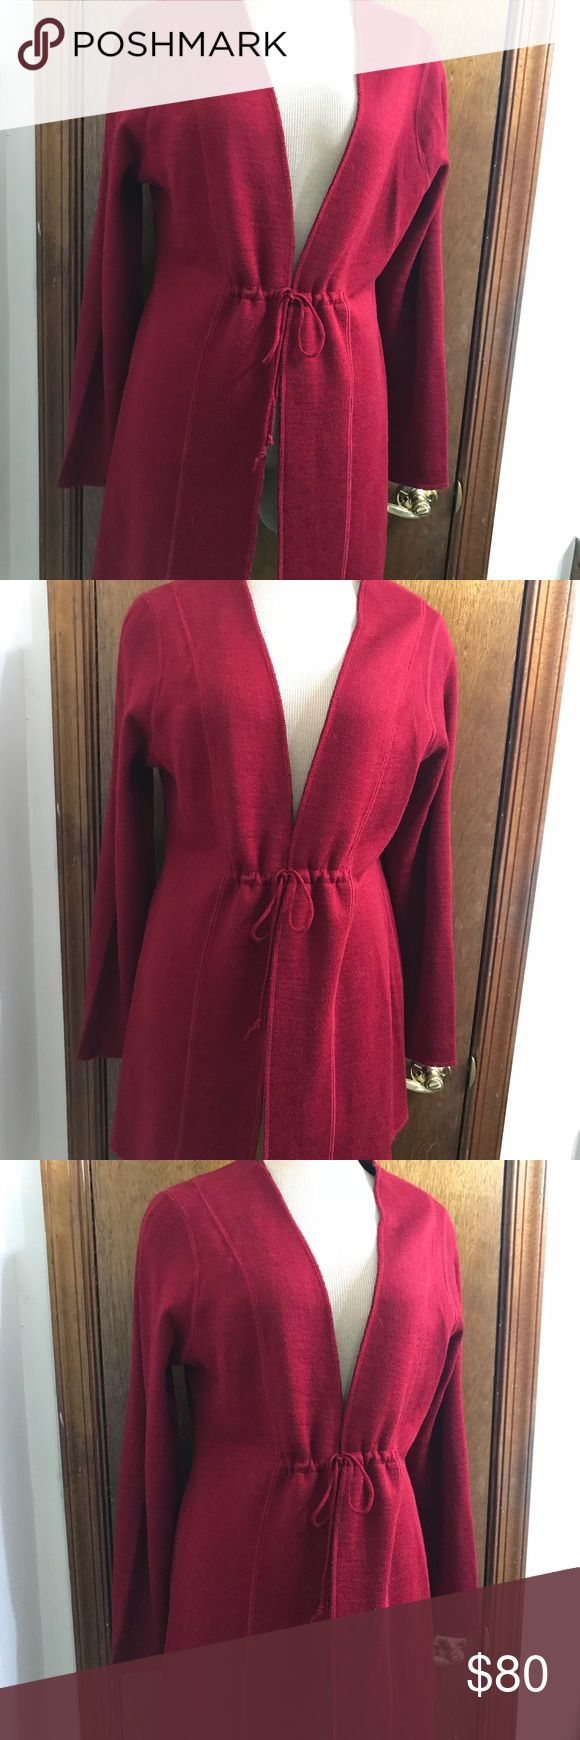 "Eileen Fisher Women's Red Black Wool Cardigan Eileen Fisher Women's Red Black Wool Cardigan Sweater Size Large  Wool blend Tags removed by previous owner due to being itchy Pit to pit 20.5"" Waist 18.5"" across  Sleeves 25"" Shoulders 16.5"" Length 34"" Excellent Condition Eileen Fisher Sweaters Cardigans"